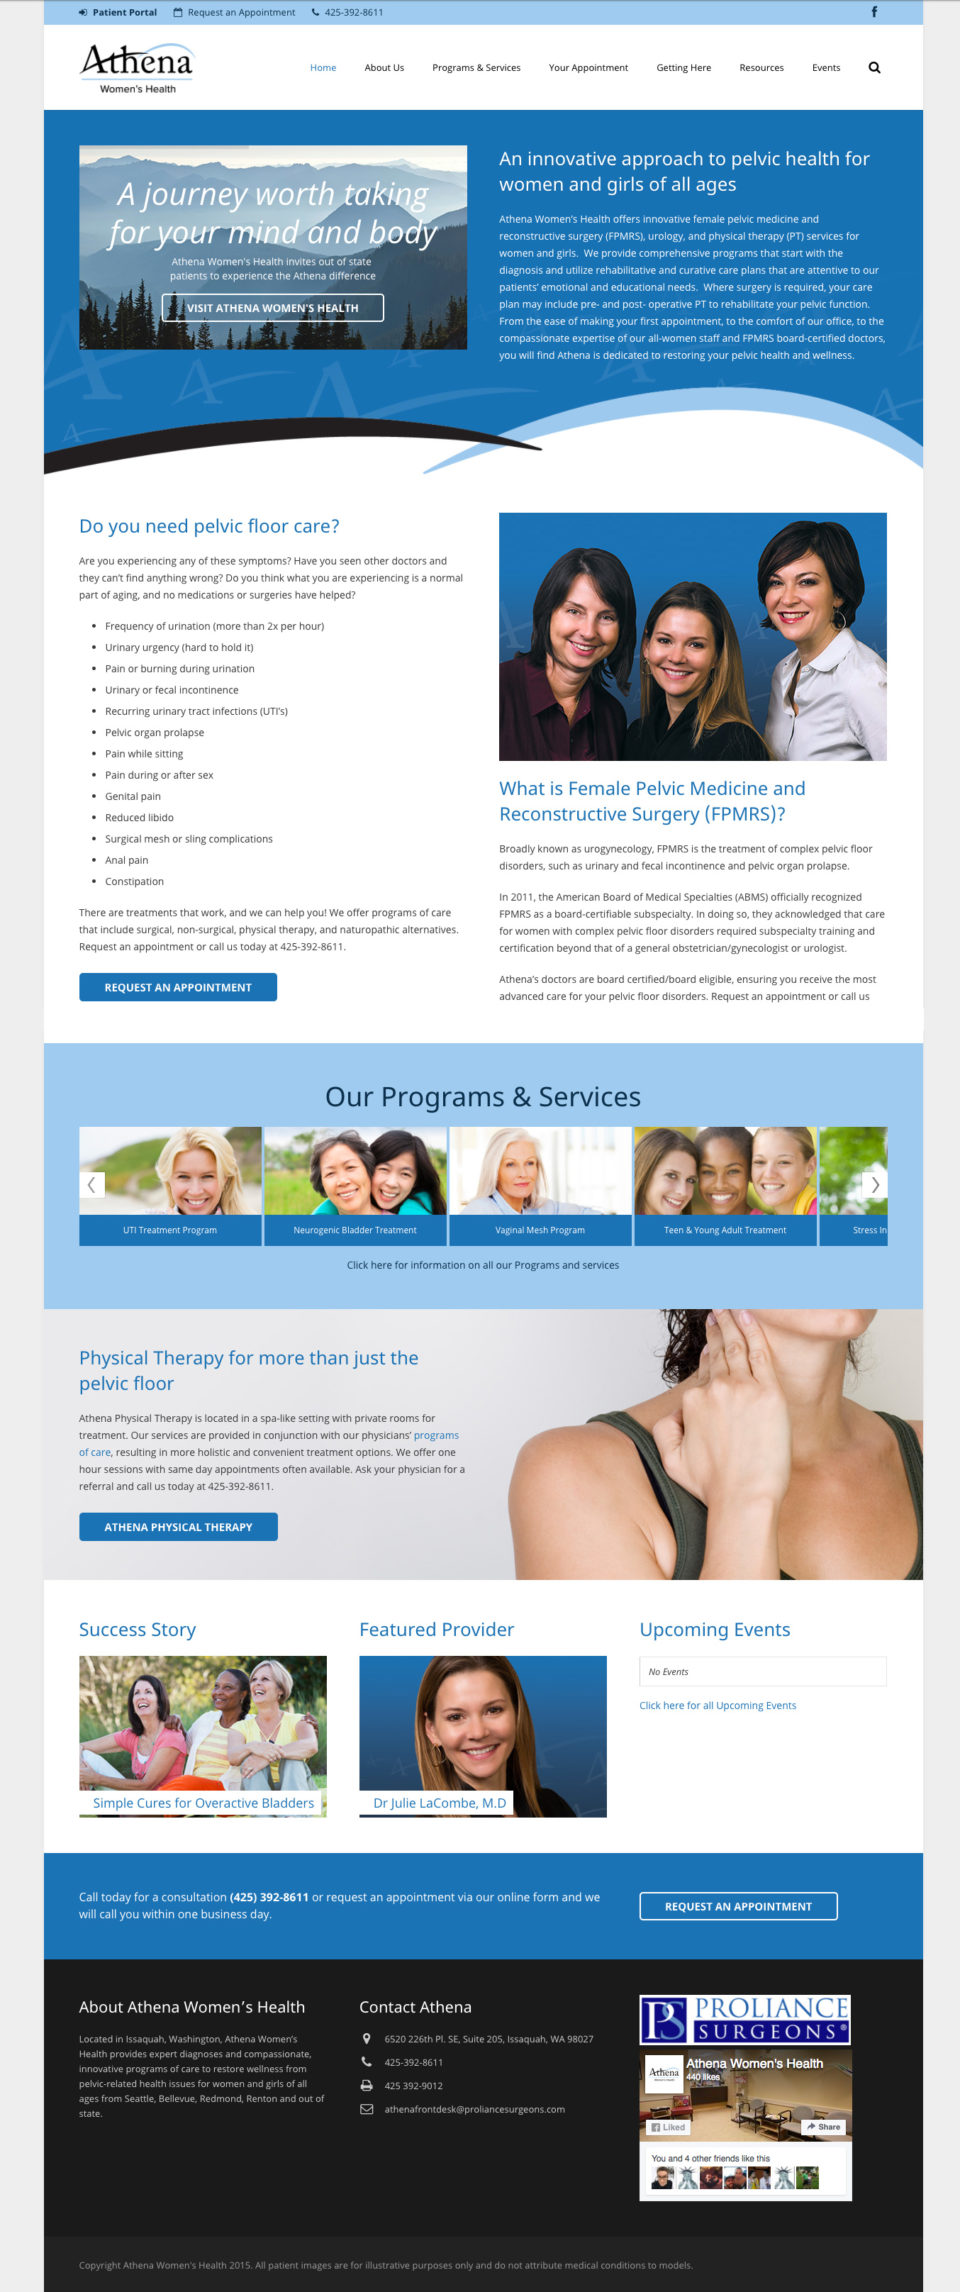 Athena Women's Health home page